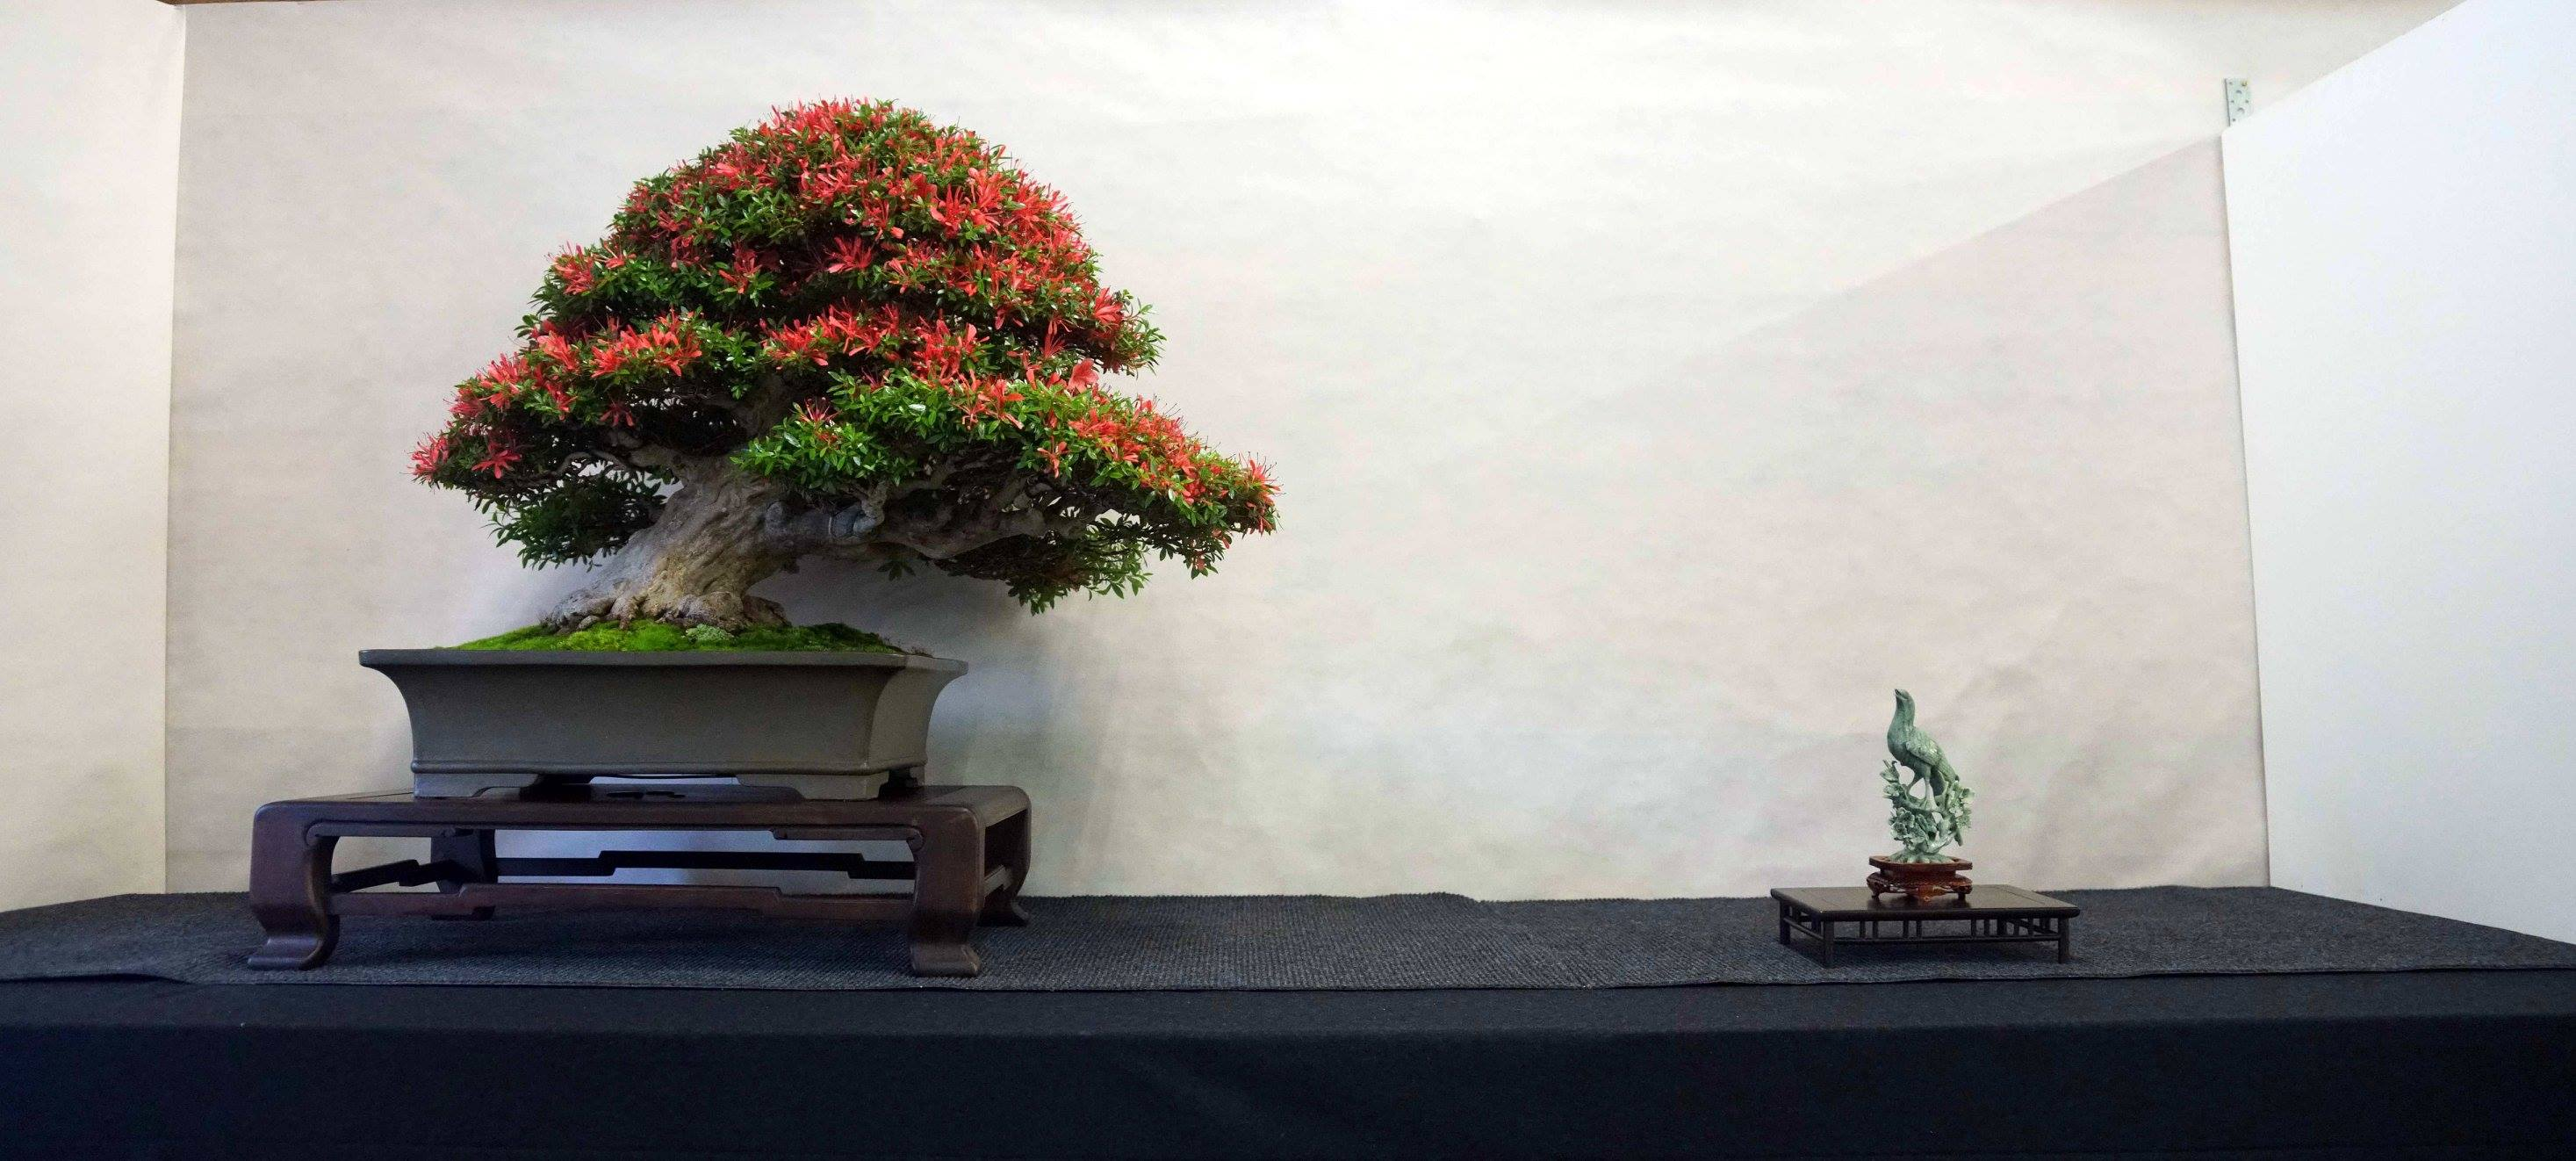 As expected, the bonsai and Kusamono festival in Hallein was a great pleasure. ...